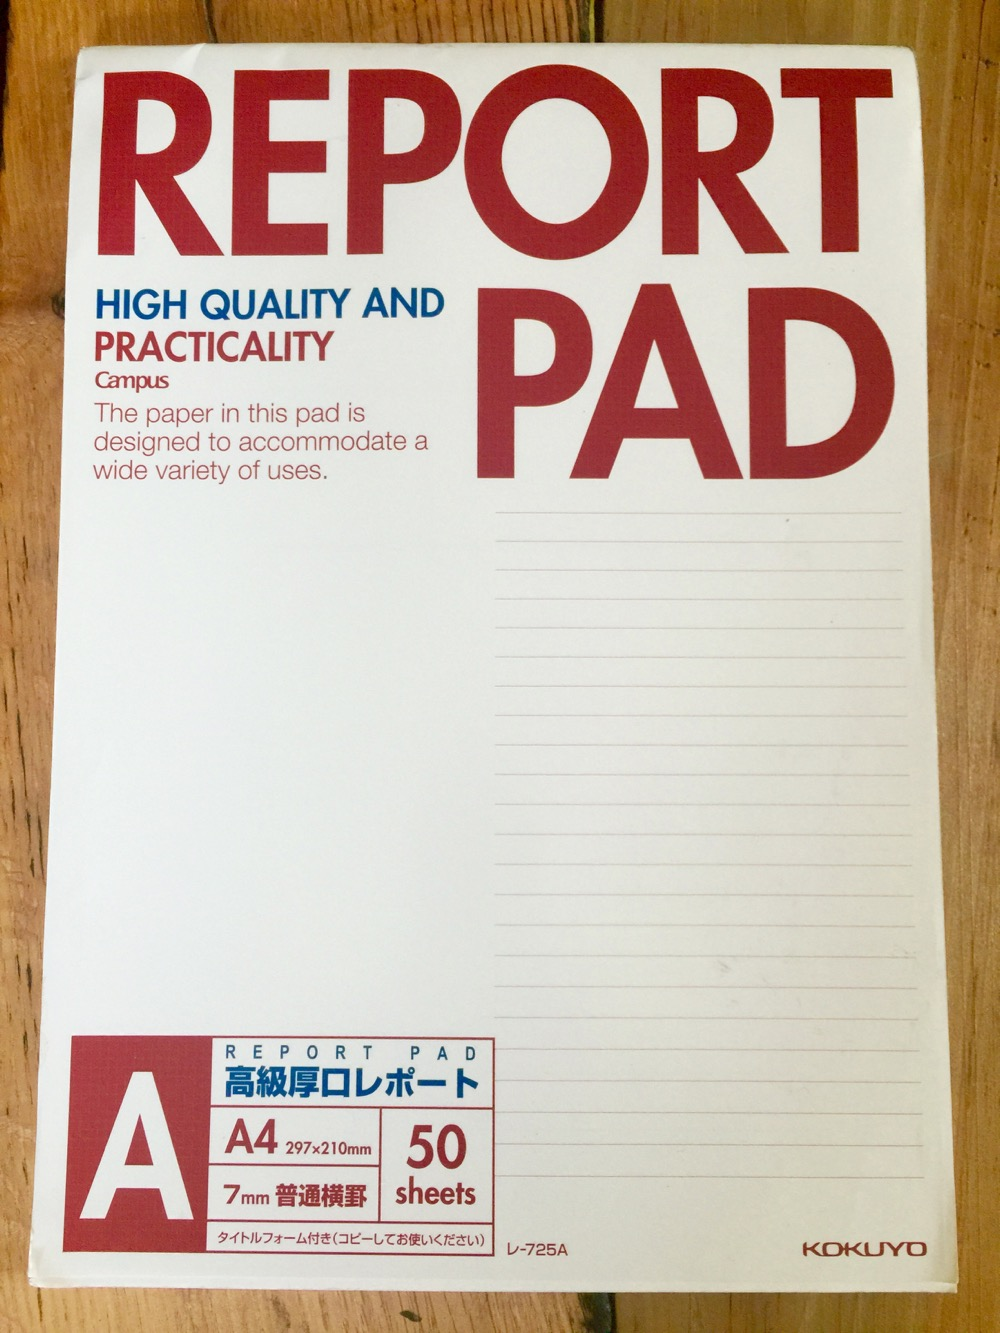 This imposing pad is clearly for very official Japanese business only.